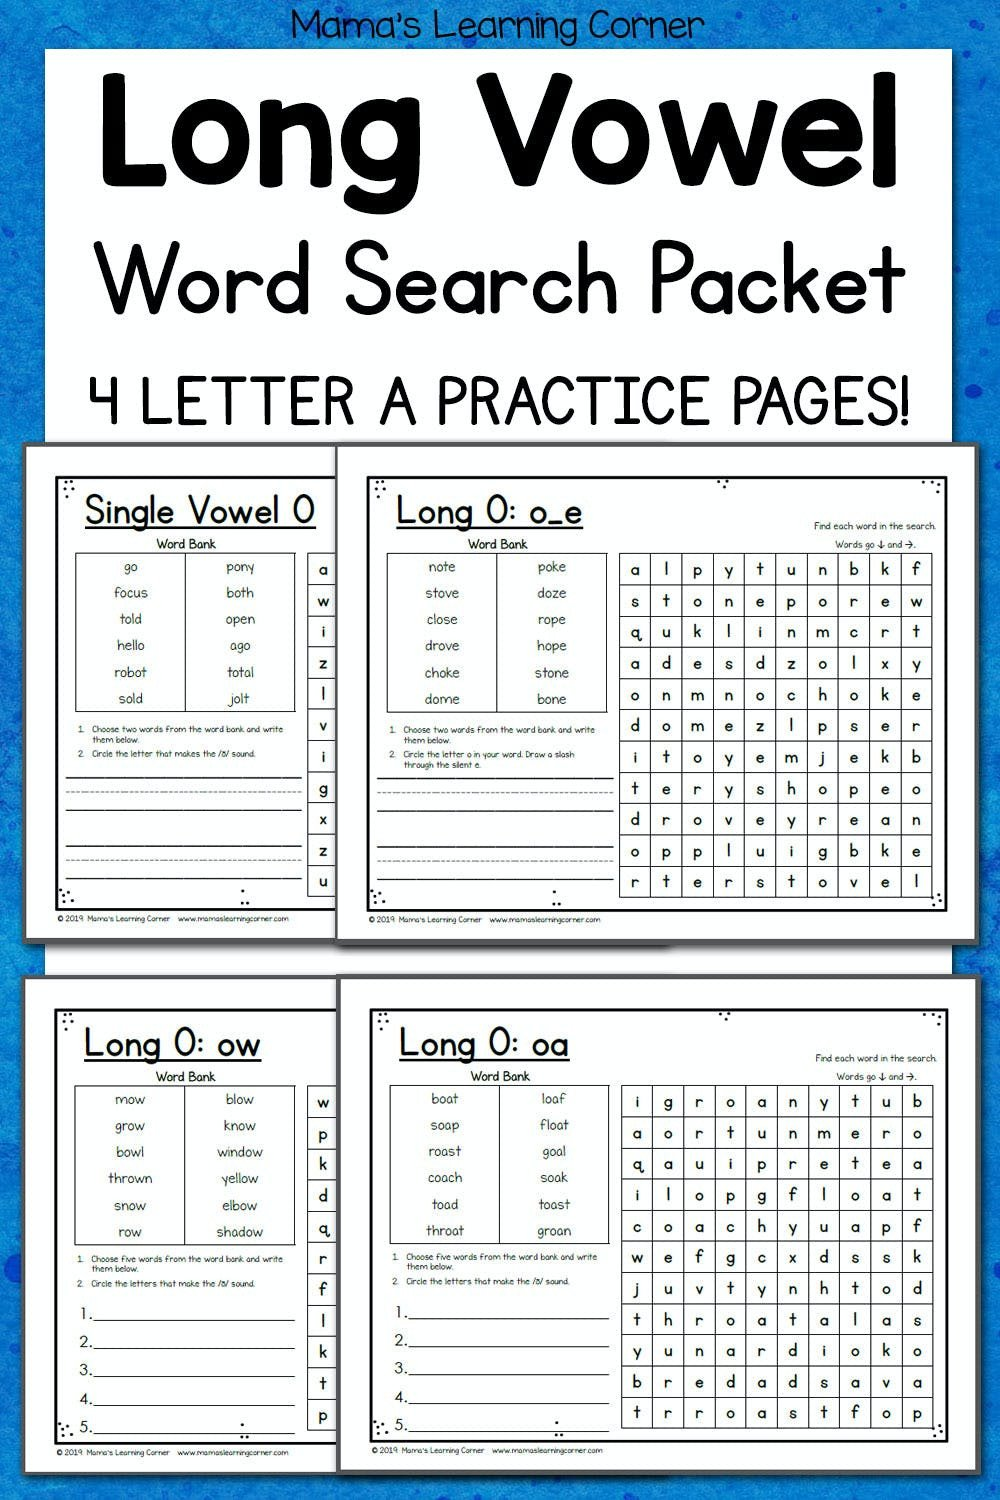 Long Vowel Worksheets for Kindergarten Long Vowel Word Search Puzzles Mamas Learning Corner